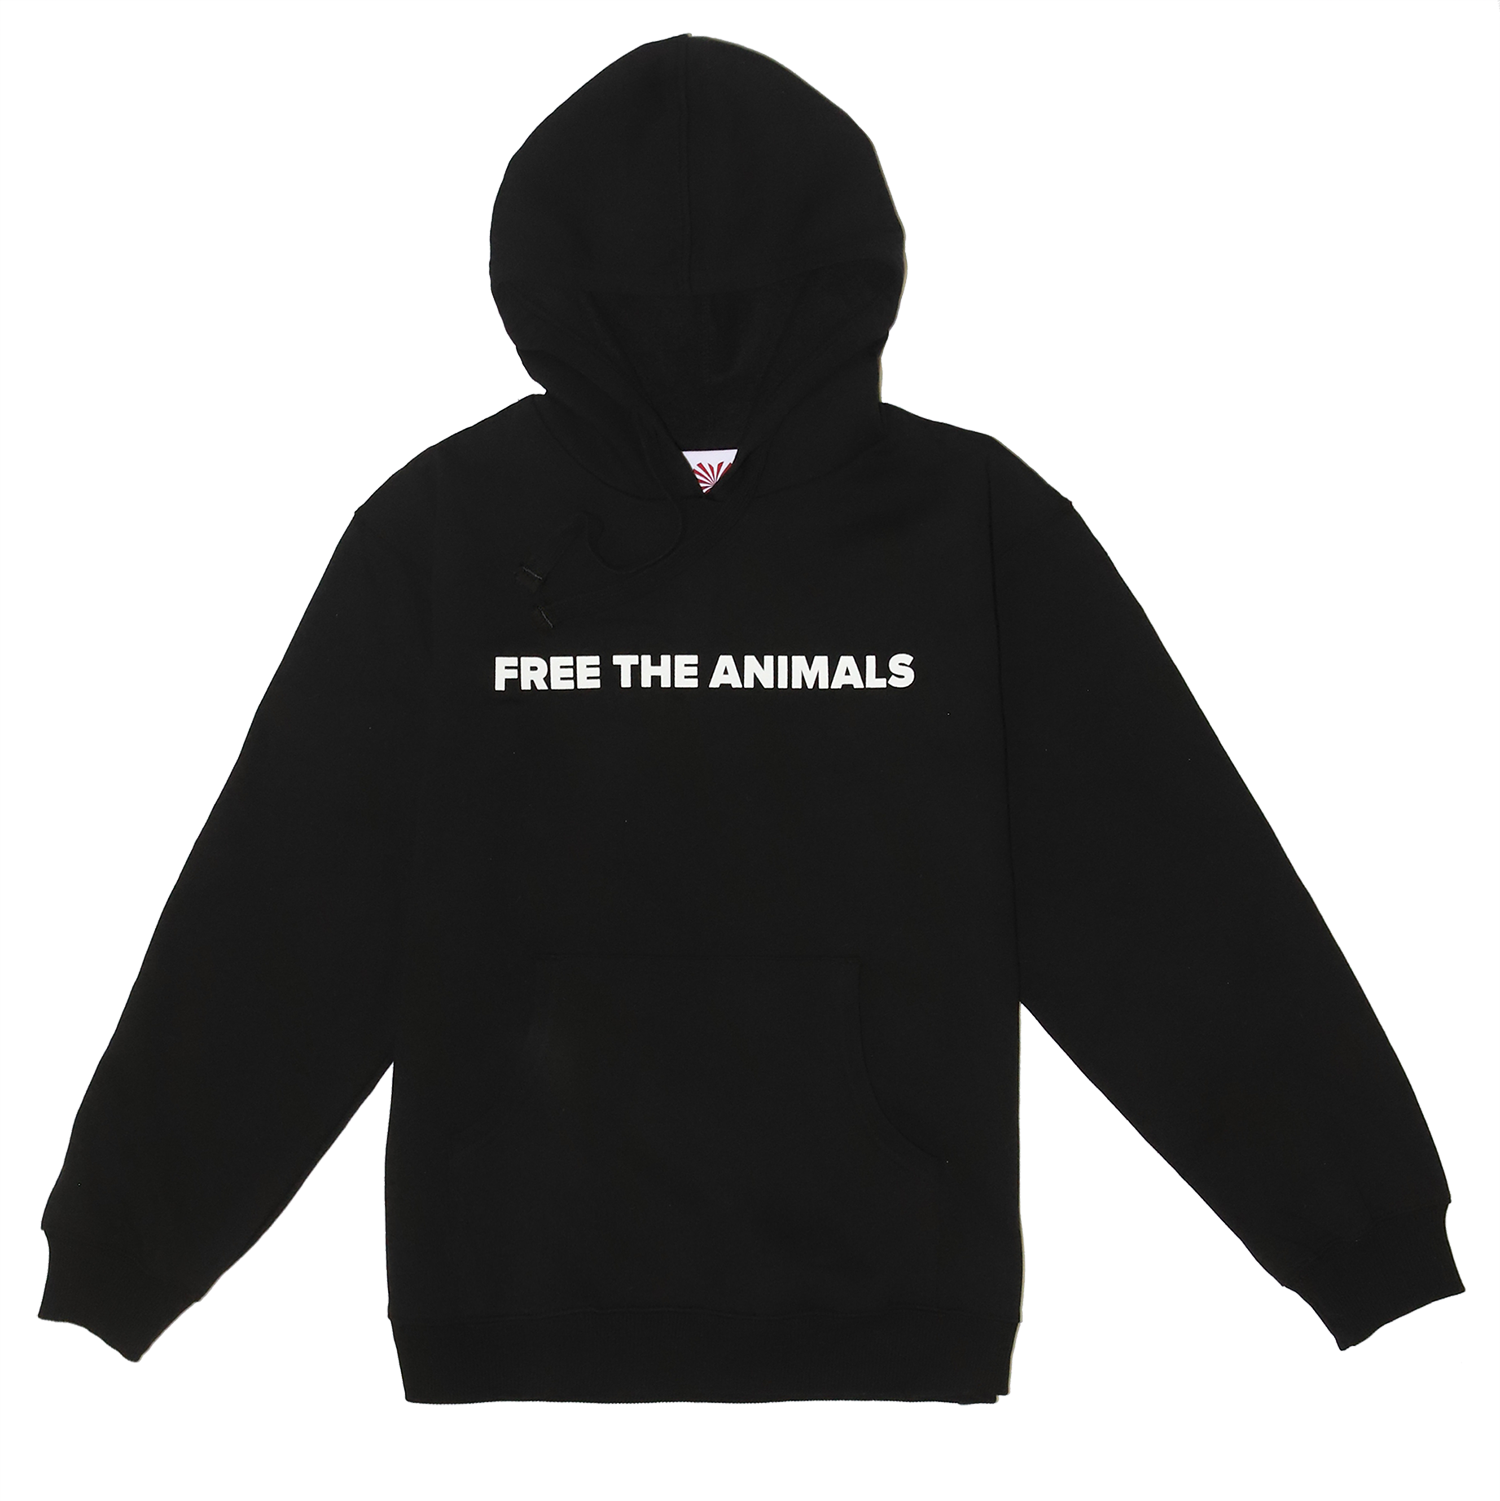 products/01-BLACK-HOODIE-FRONT_915aaa75-81c0-42fd-a4c8-d6c657e17717.png